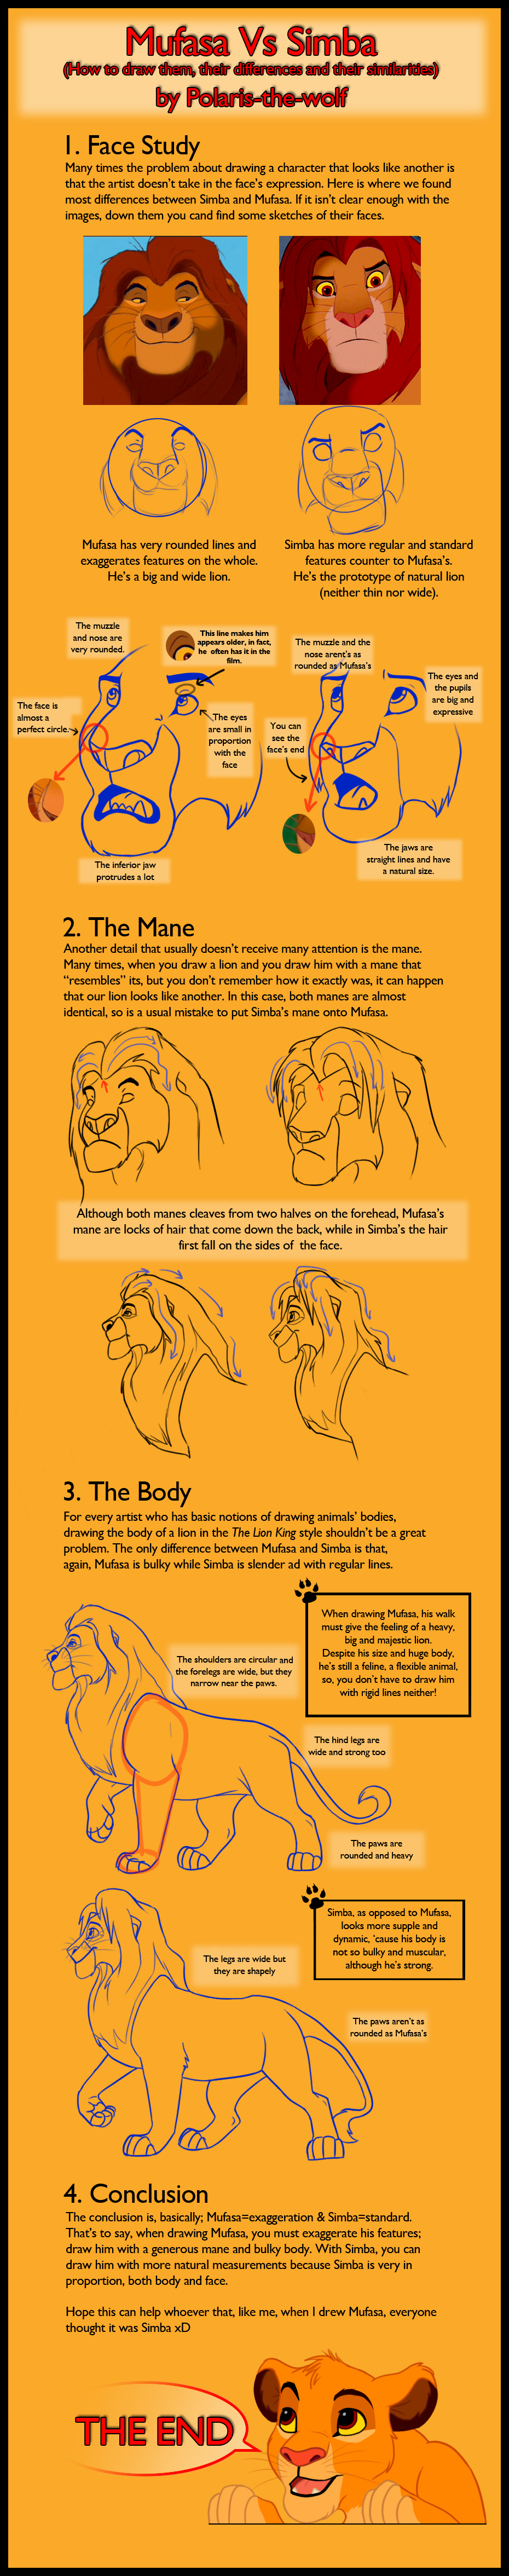 Bellypainting in addition Pineapplelonewolfbutterfly as well Mufasa VS Simba Tutorial 318362830 further Suits FanArt Hogwarts 257918292 besides Watch. on wolf painting